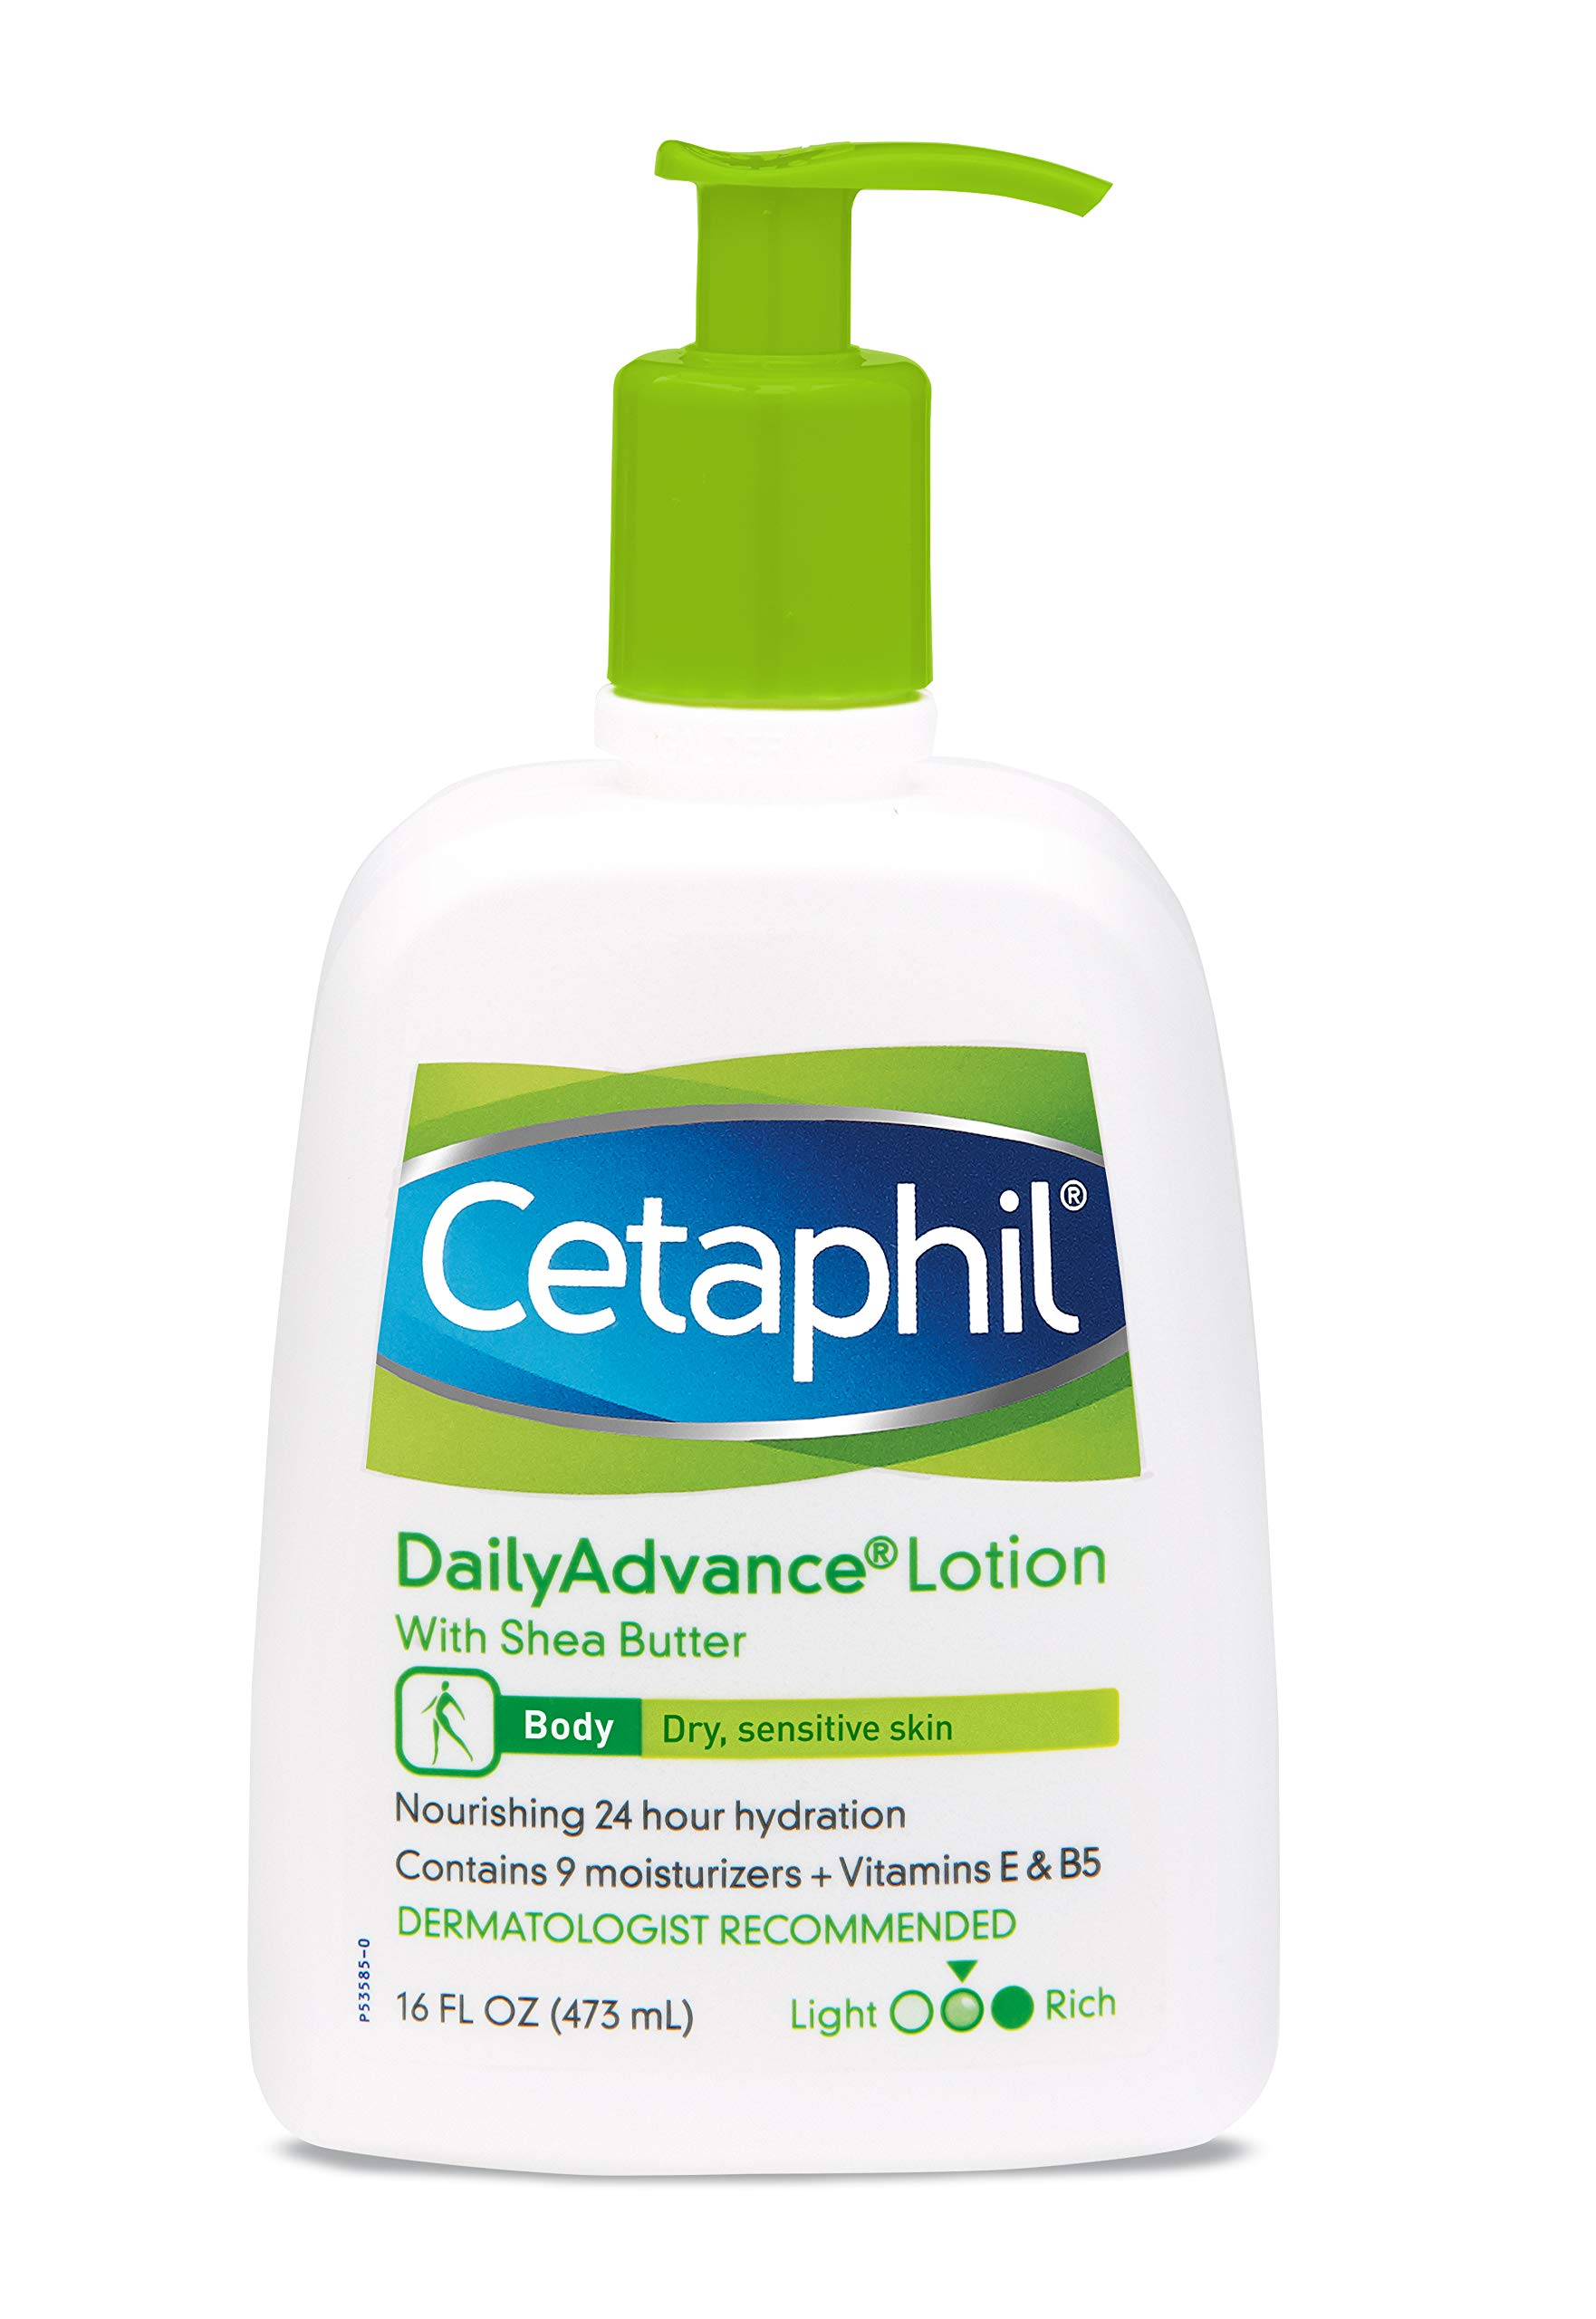 Cetaphil Daily Advance Ultra Hydrating Lotion With Shea Butter For Dry, Sensitive Skin, 16 Fl Oz (Pack of 1) by Cetaphil